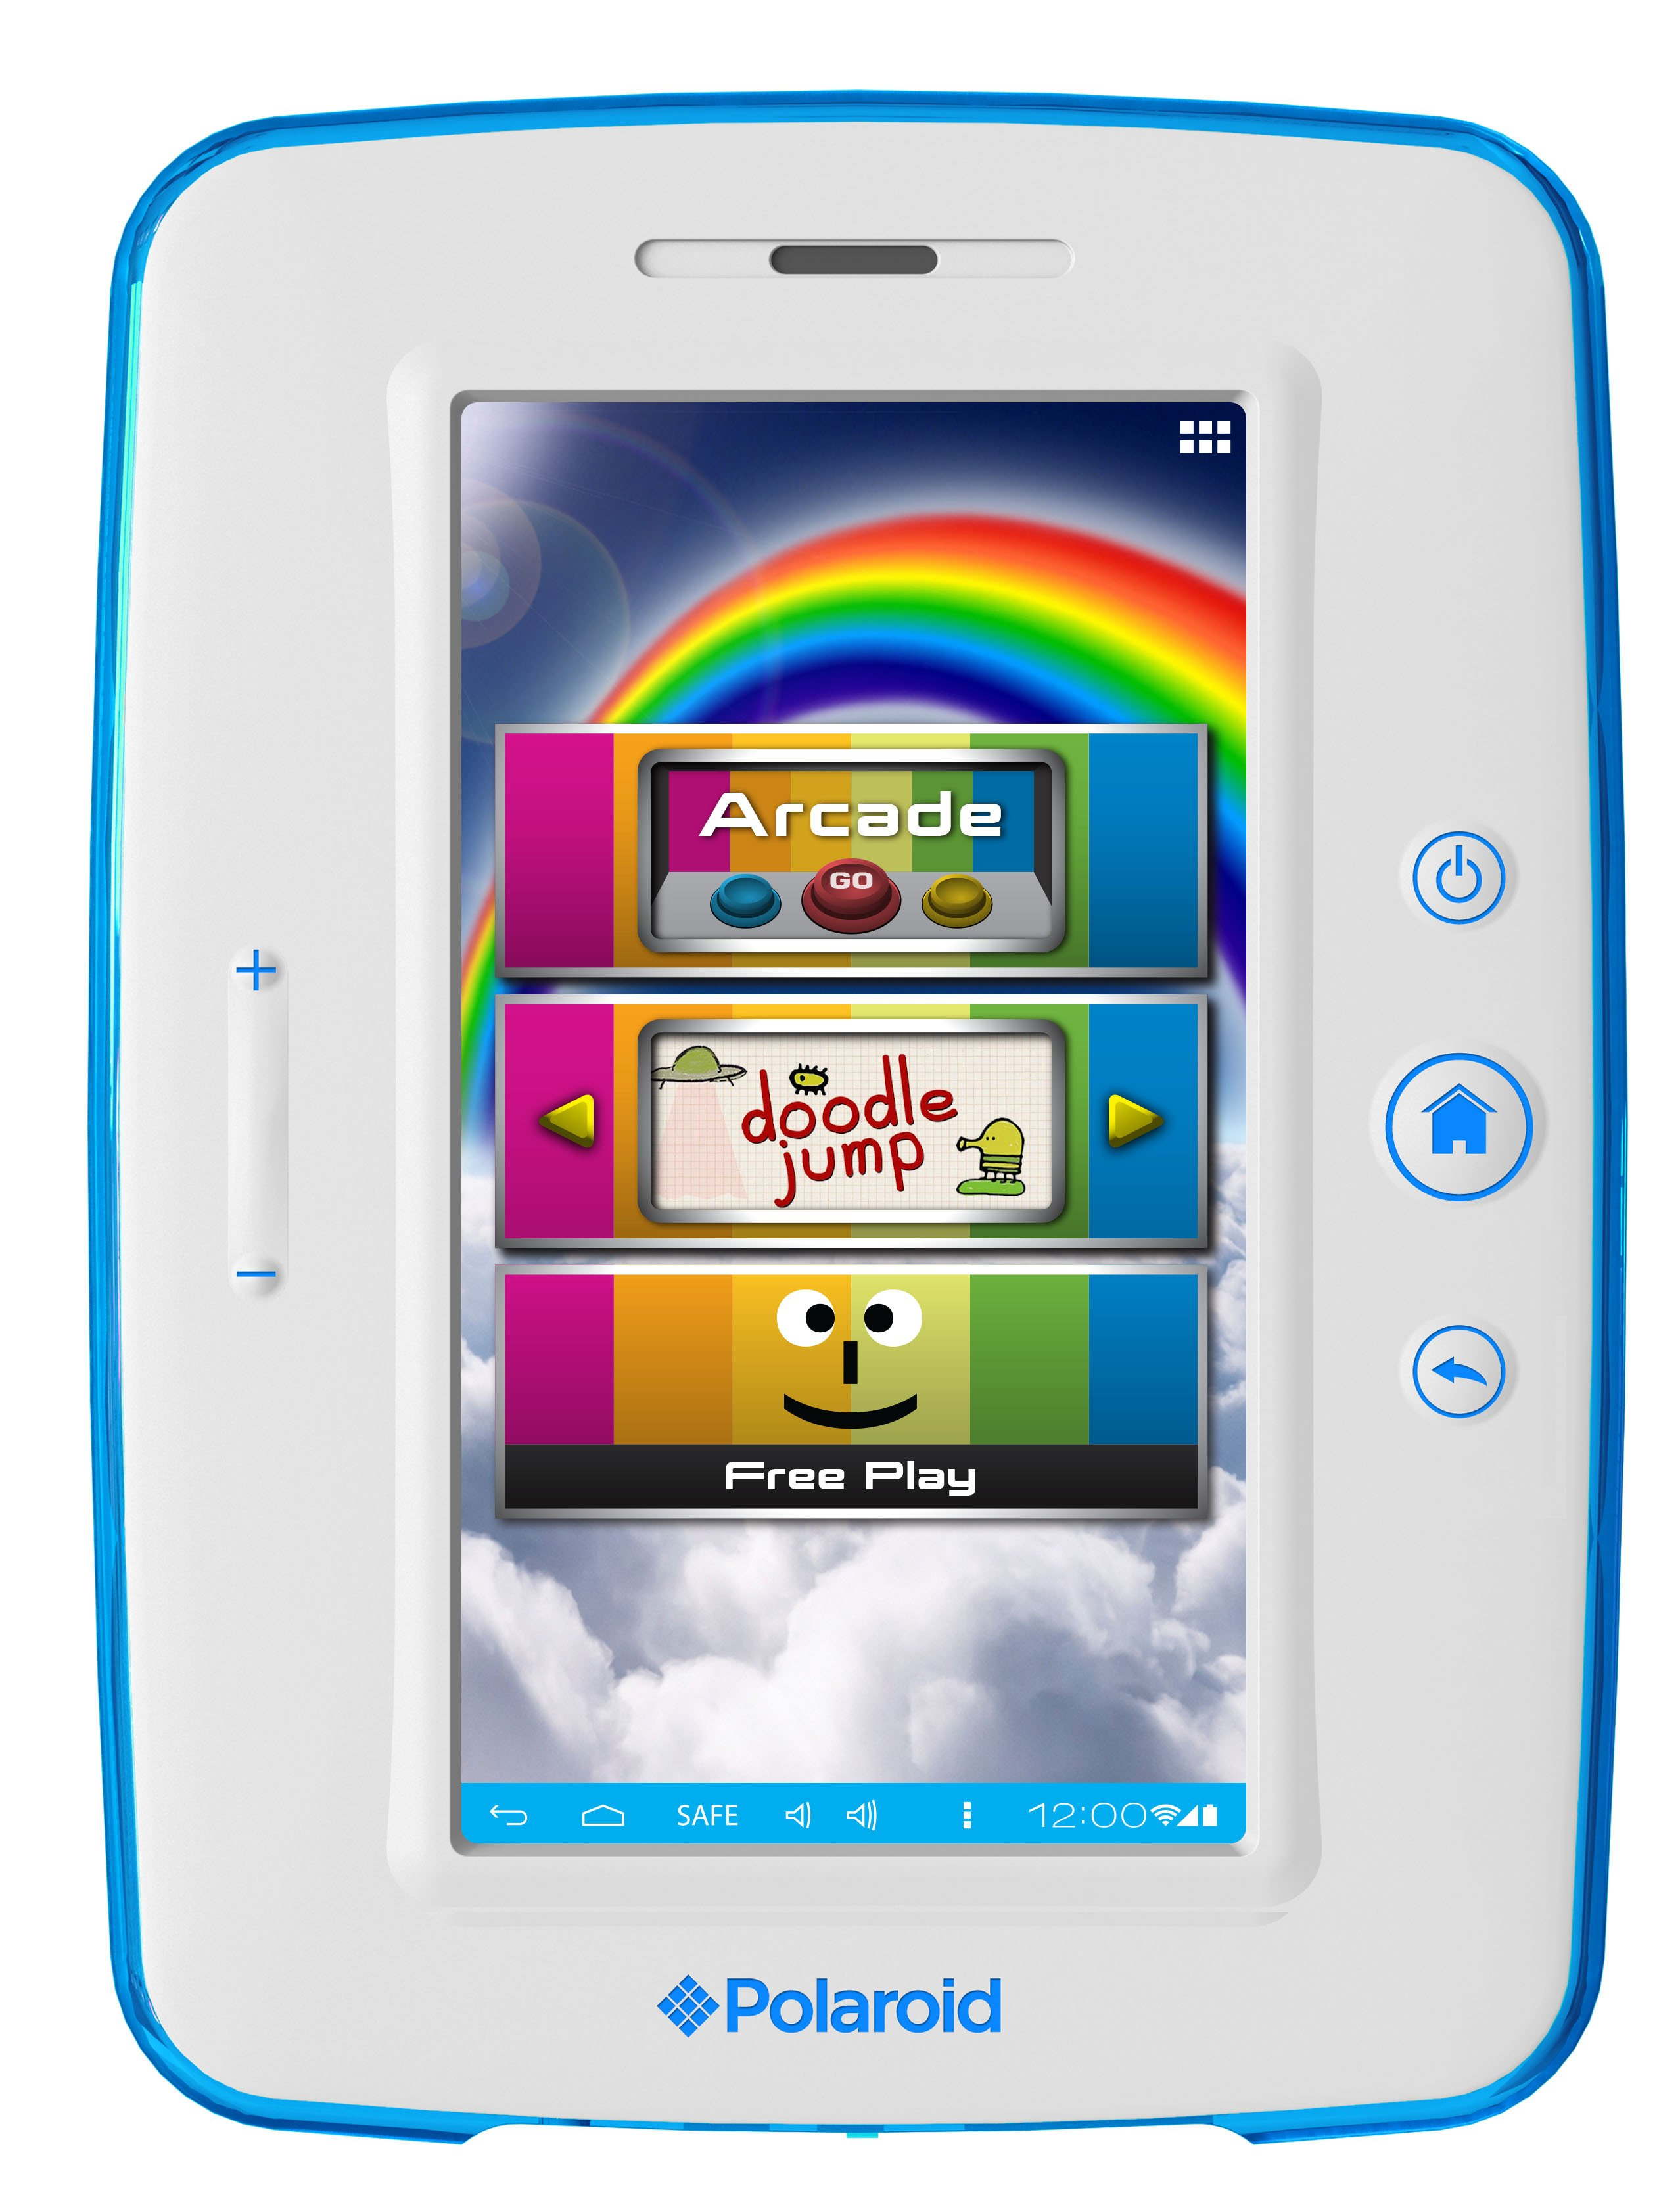 inch tablet kids tablet polaroid polaroid android polaroid tablet